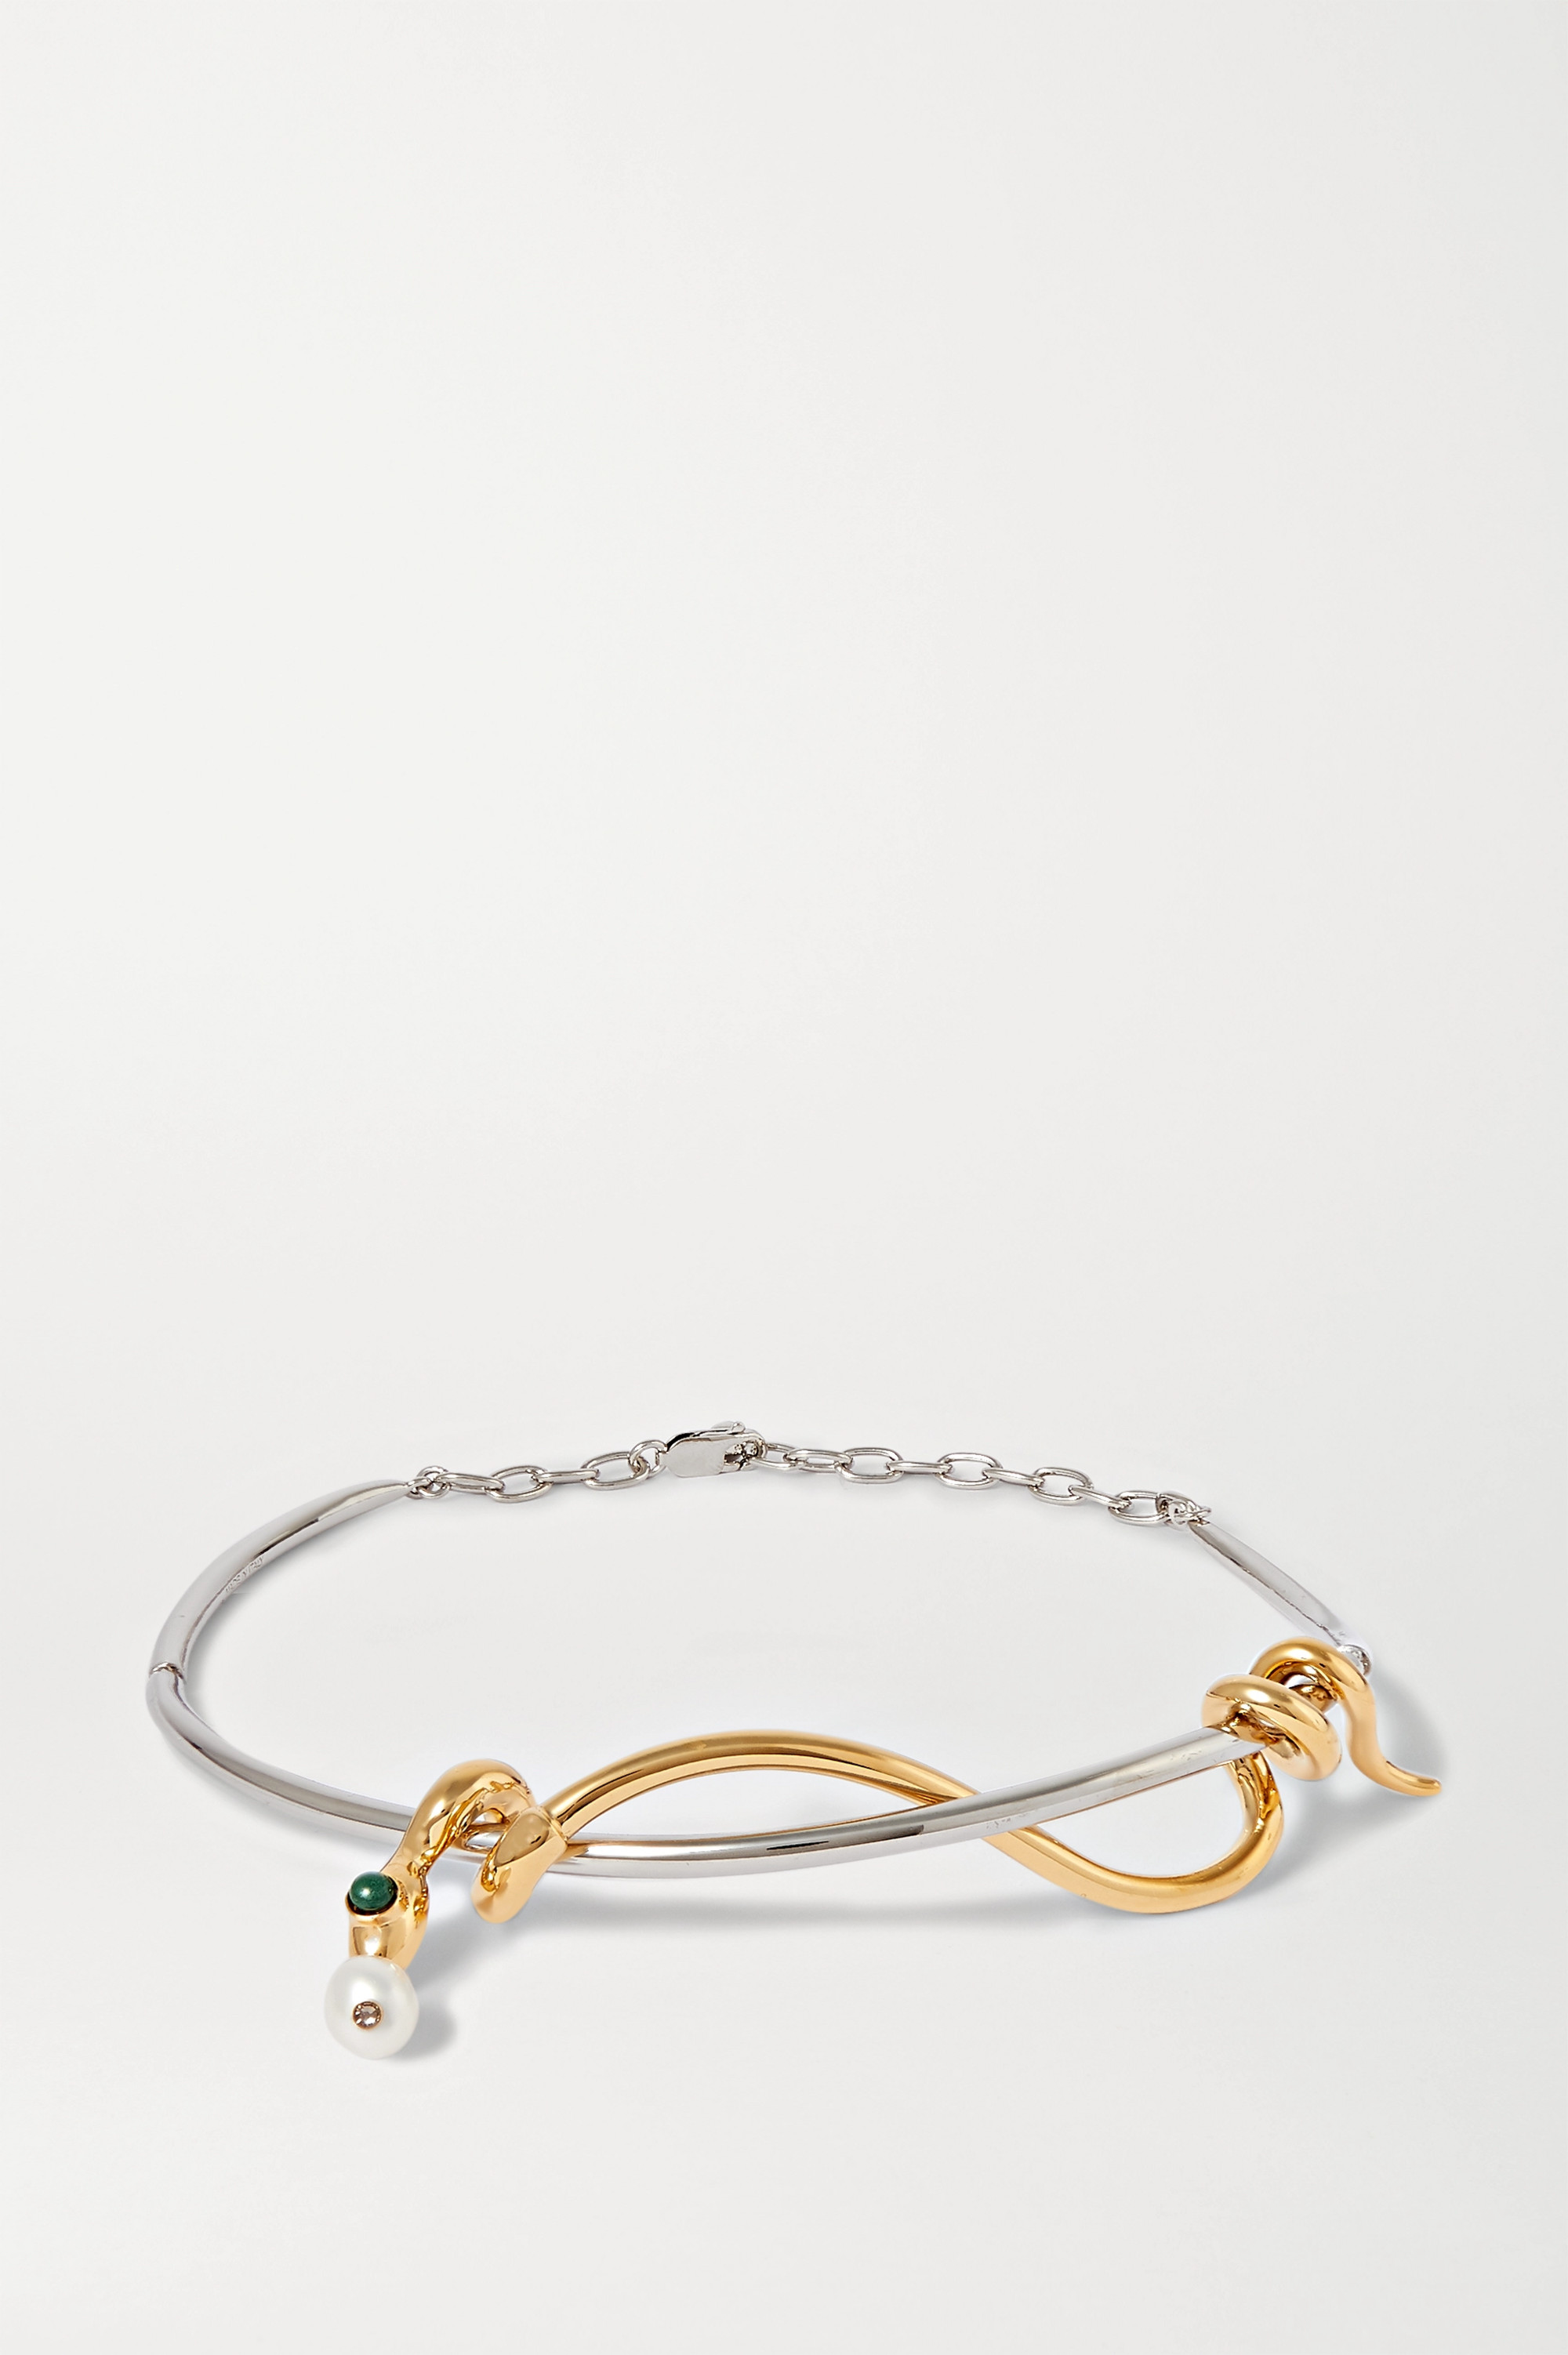 Chloé Callie silver and gold-tone multi-stone necklace